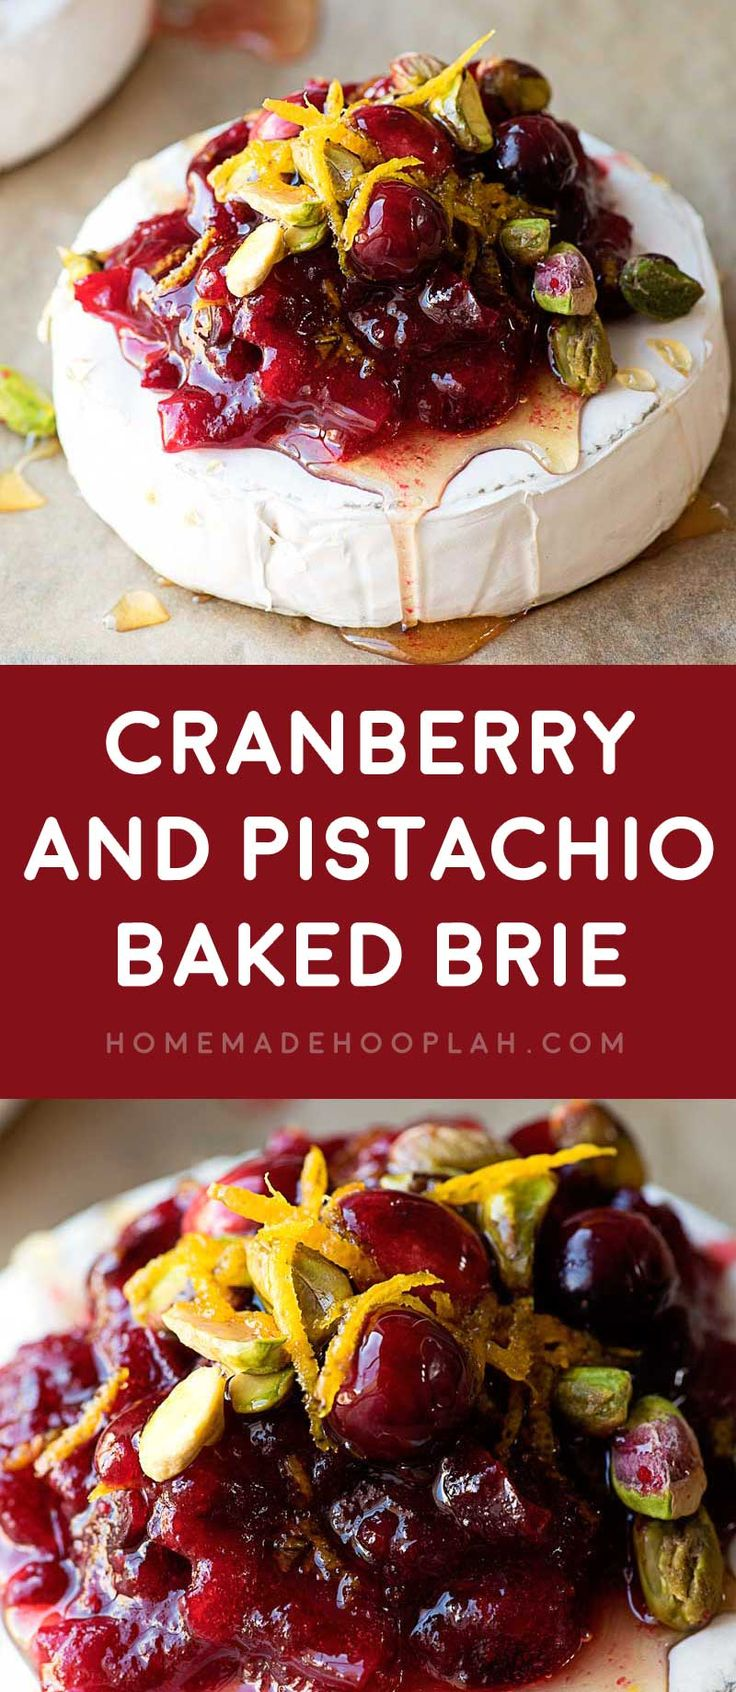 Cranberry and Pistachio Baked Brie! Warm baked brie with cranberry sauce, pistachios, orange zest, and Truvia Nectar. Serve with toasted bread or crackers for a festive cranberry appetizer! #UseNectar @Truvia #sponsored | HomemadeHooplah.com via @homemadehooplah